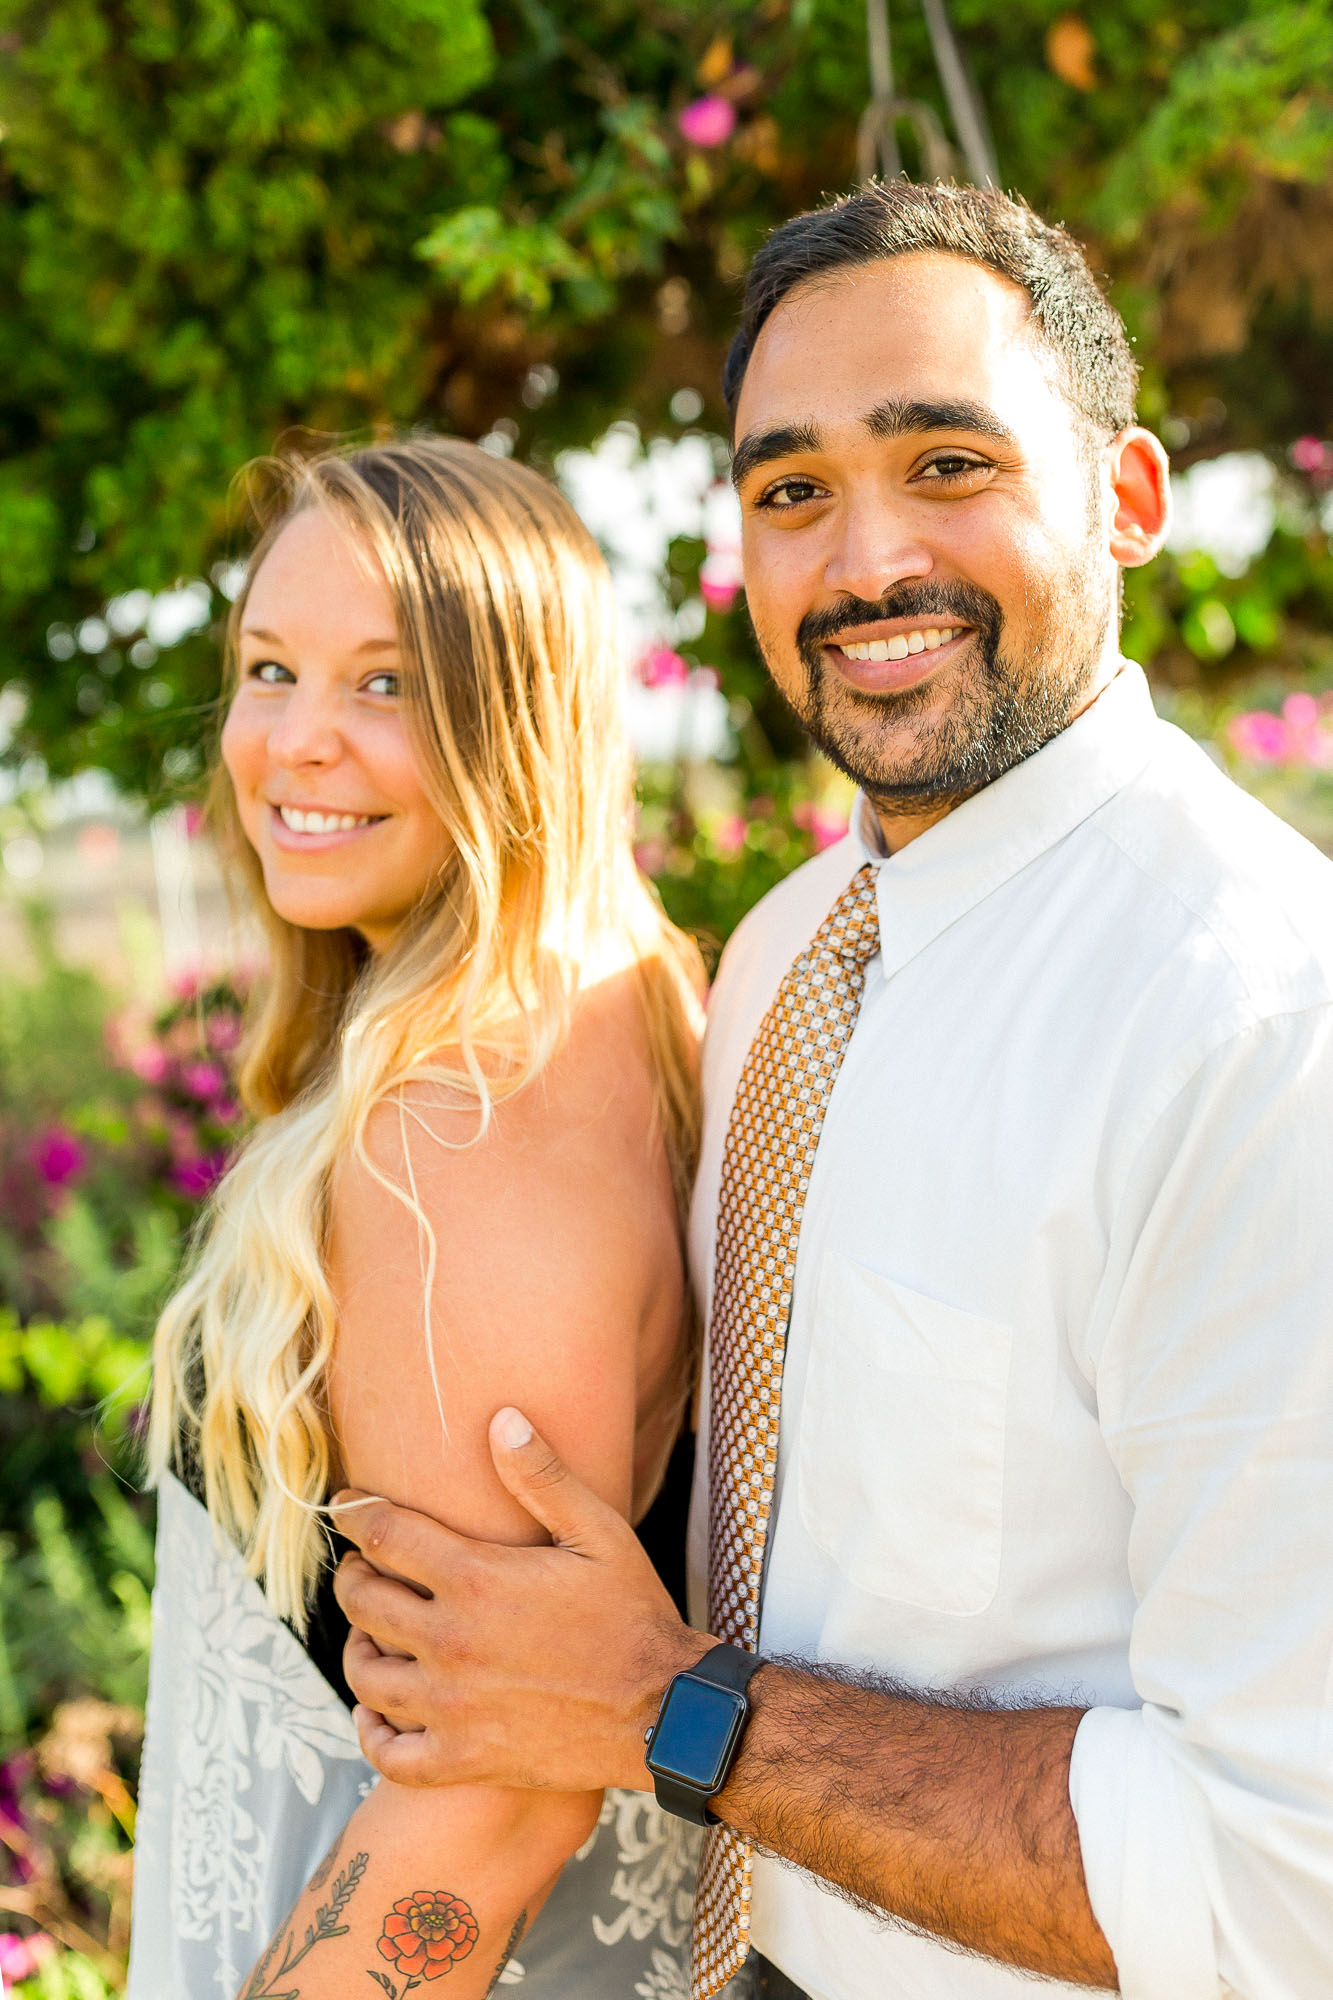 Justine_Puneet_Cardiff_Engagement_Session_065.jpg